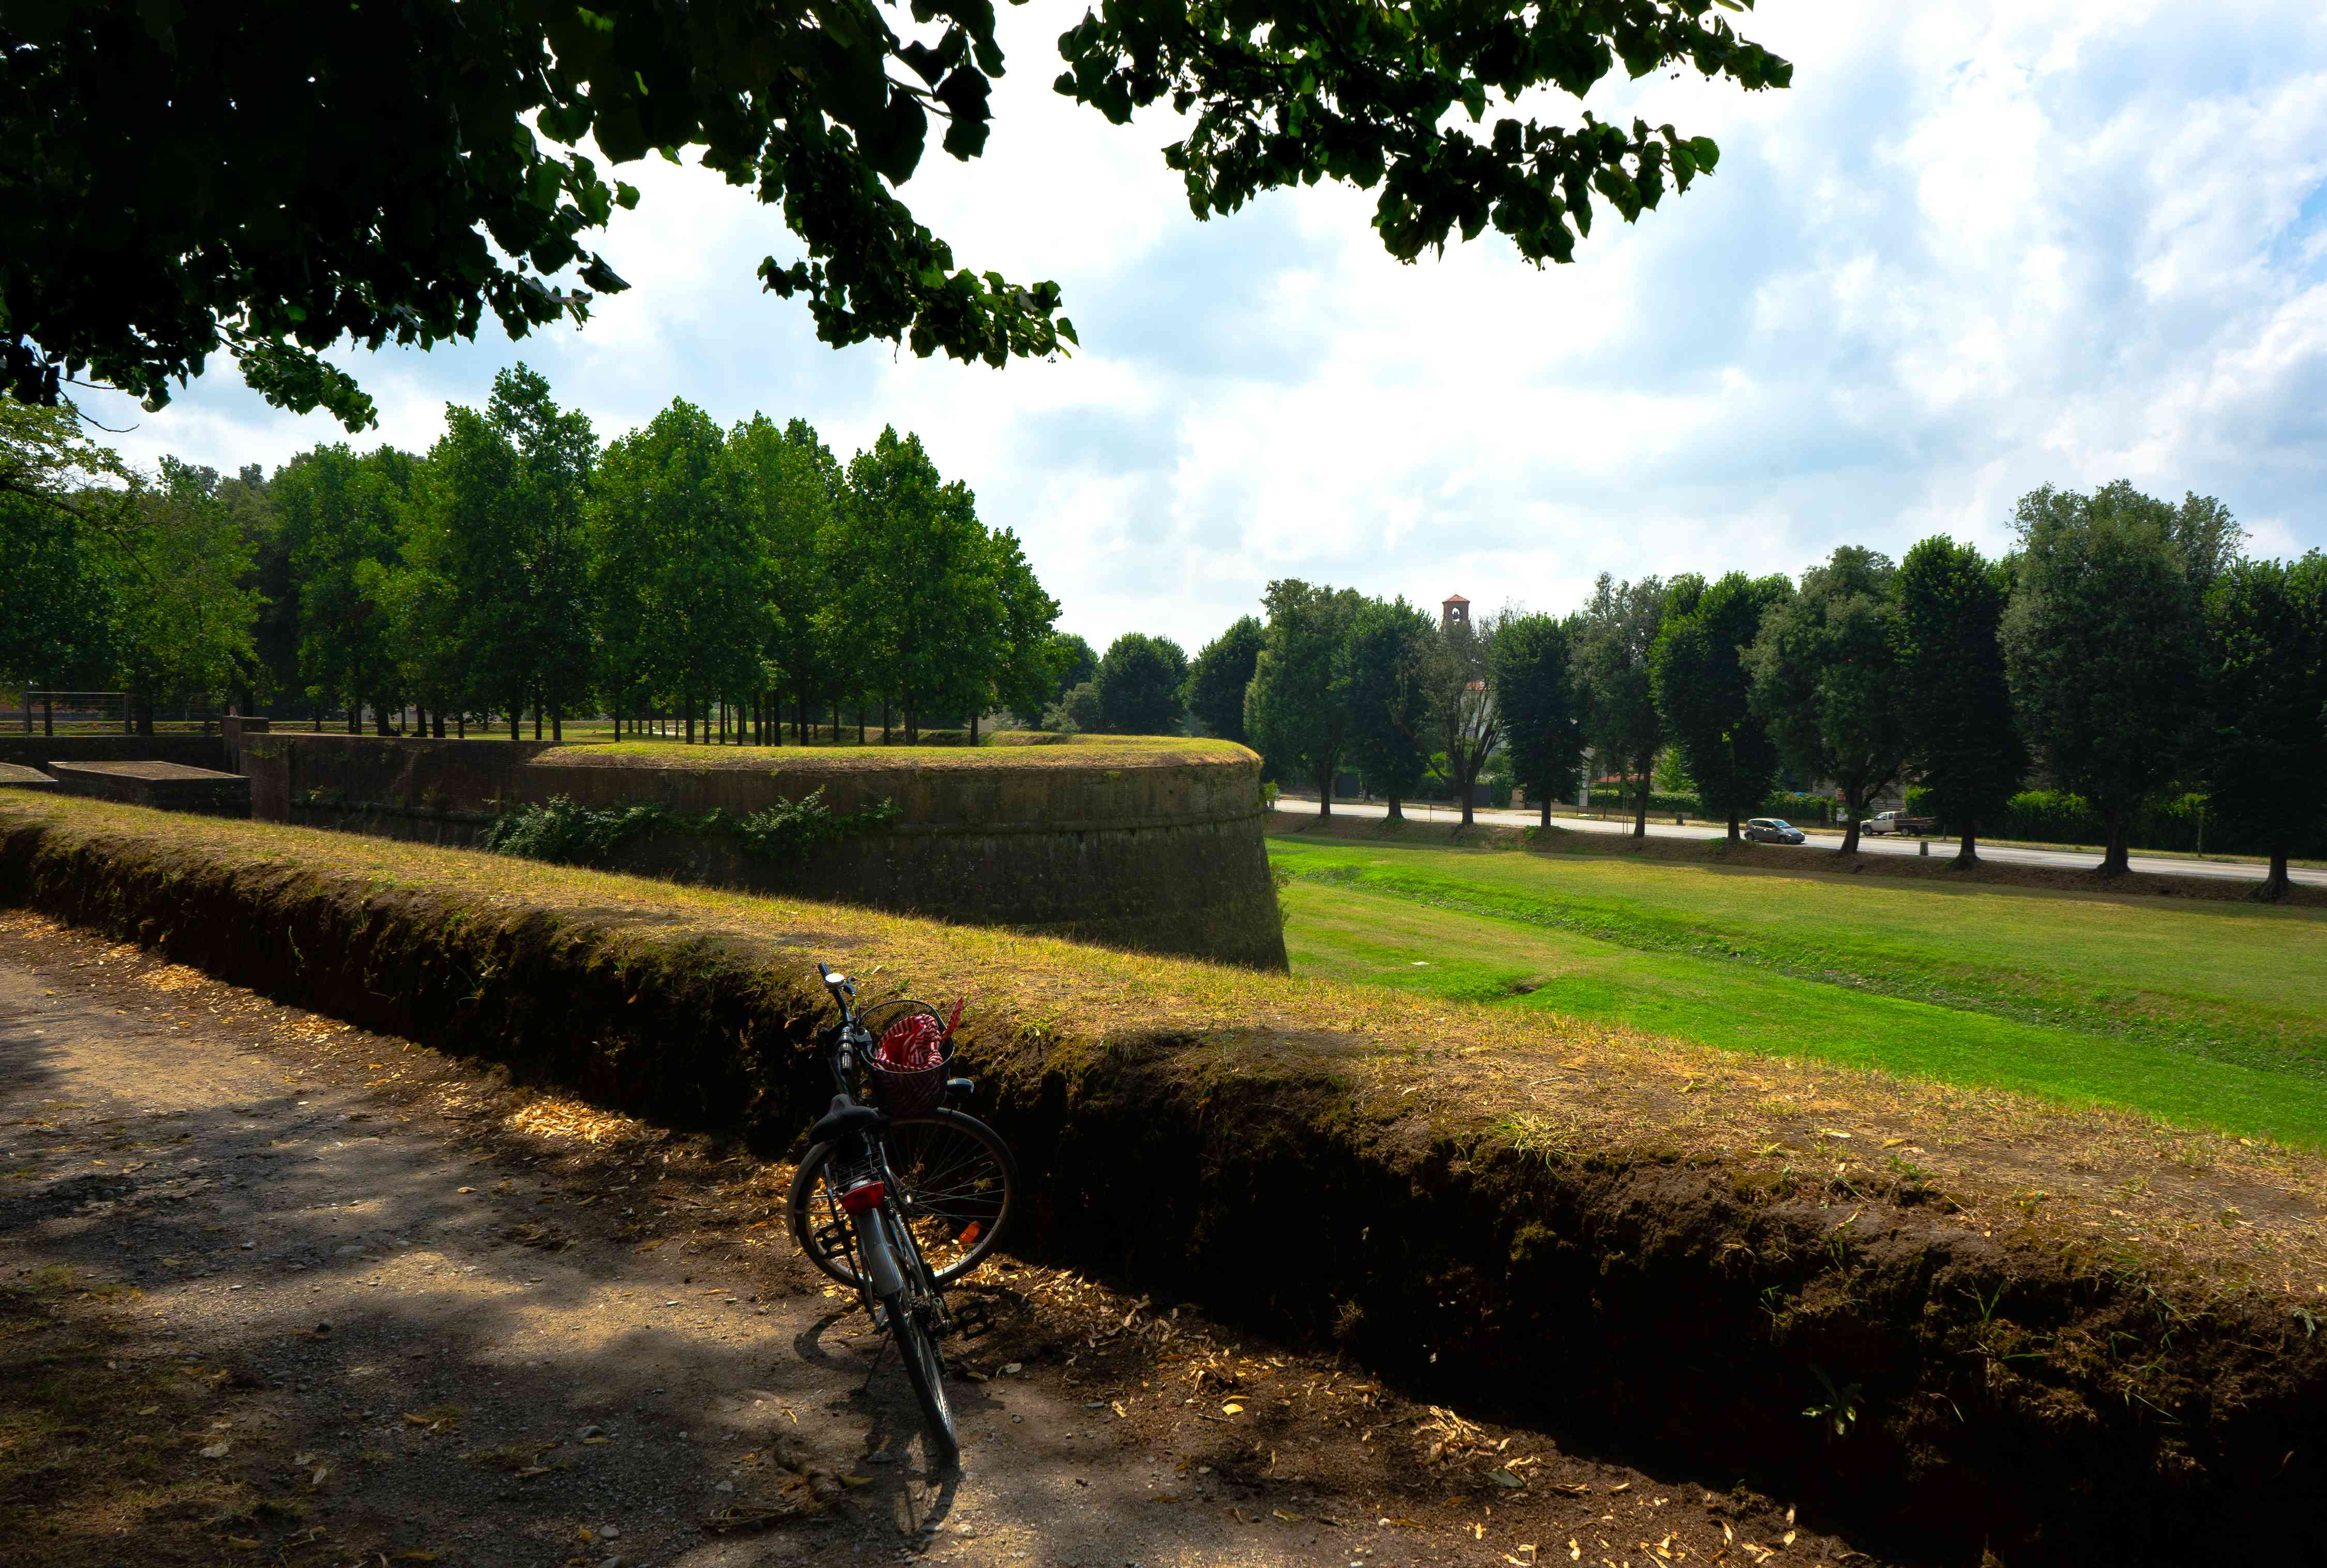 A bike on top of Lucca's walls overlooking a green park